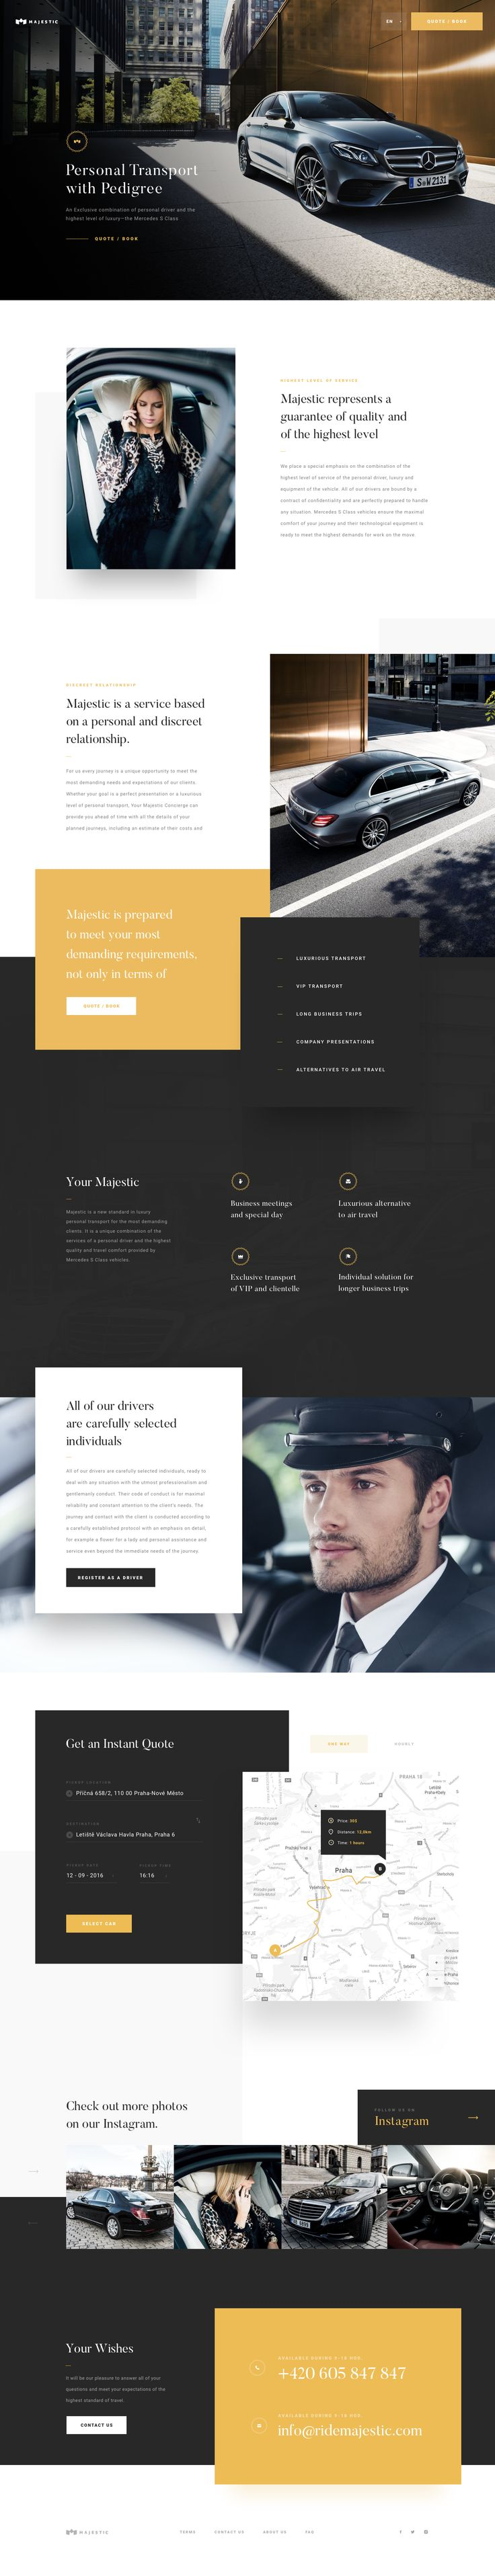 Ridemajestic – Ui design concept for official marketplace, by Martin Strba.